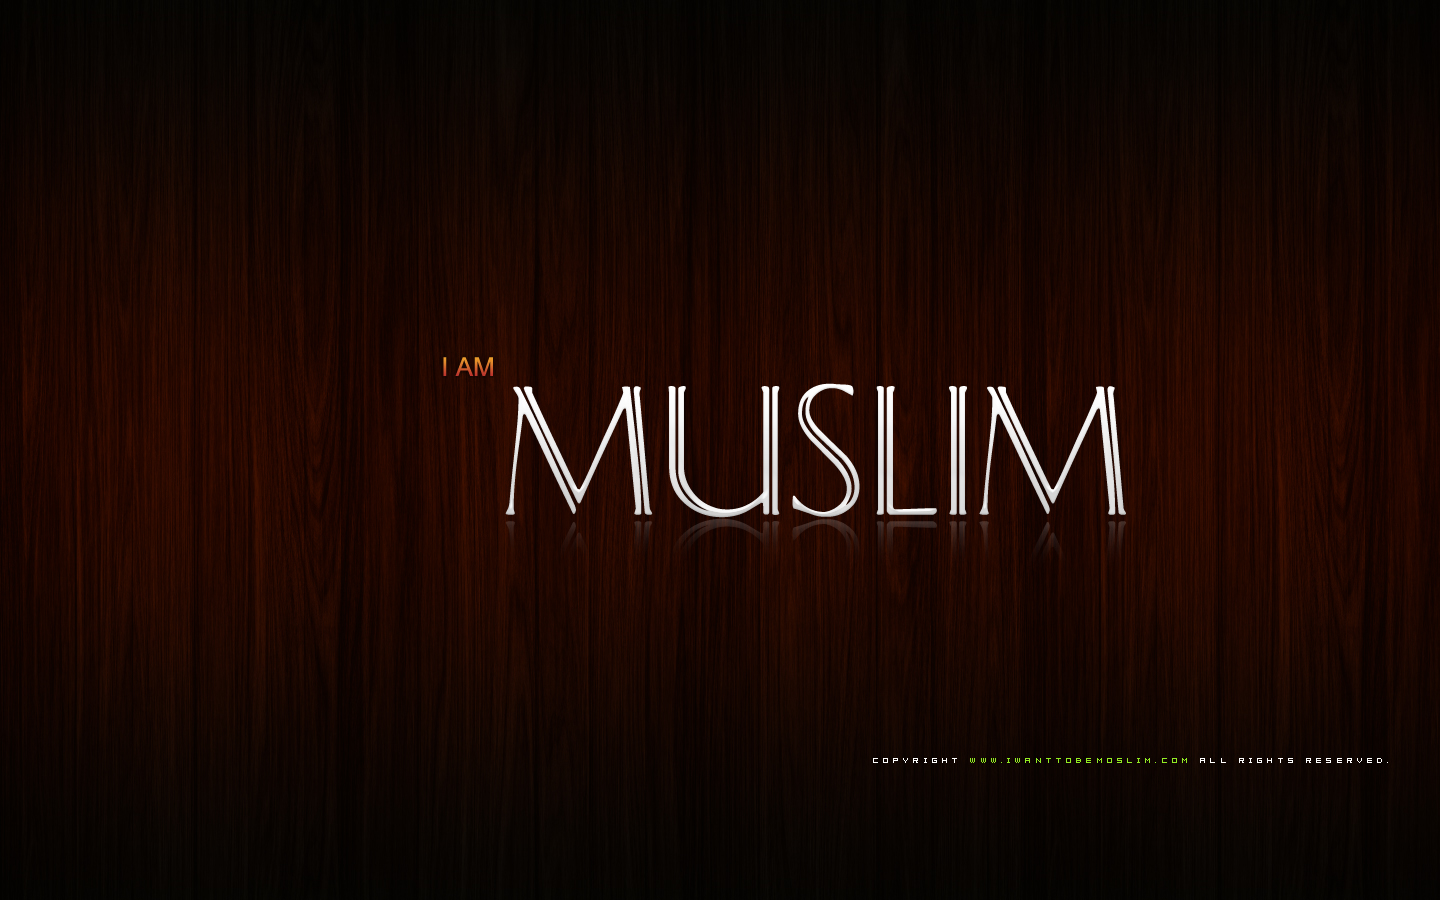 Super HD islamic wallpaper by I-WANT-TO-BE-MUSLIM on DeviantArt SW-24